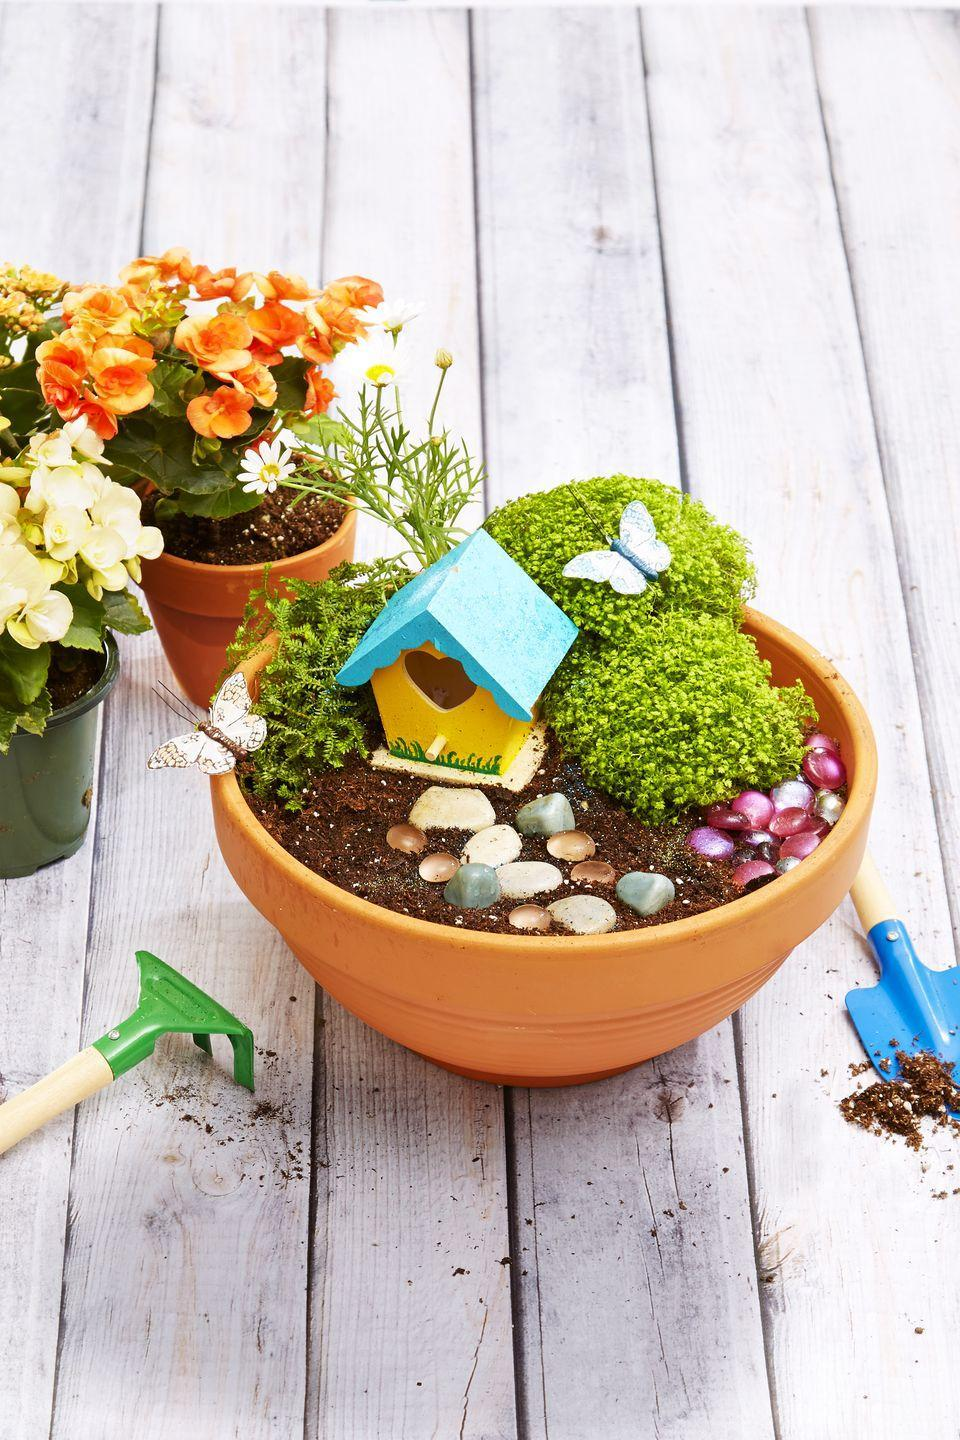 "<p>Think small — really small — with this adorable project. Outfitted with a mini birdhouse, rustic stones, and teeny-tiny accessories, this planter is the perfect thing to make with kids. </p><p><em><a href=""https://www.goodhousekeeping.com/home/craft-ideas/a33567/fairy-garden-how-to/"" rel=""nofollow noopener"" target=""_blank"" data-ylk=""slk:Get the tutorial »"" class=""link rapid-noclick-resp"">Get the tutorial »</a></em></p>"